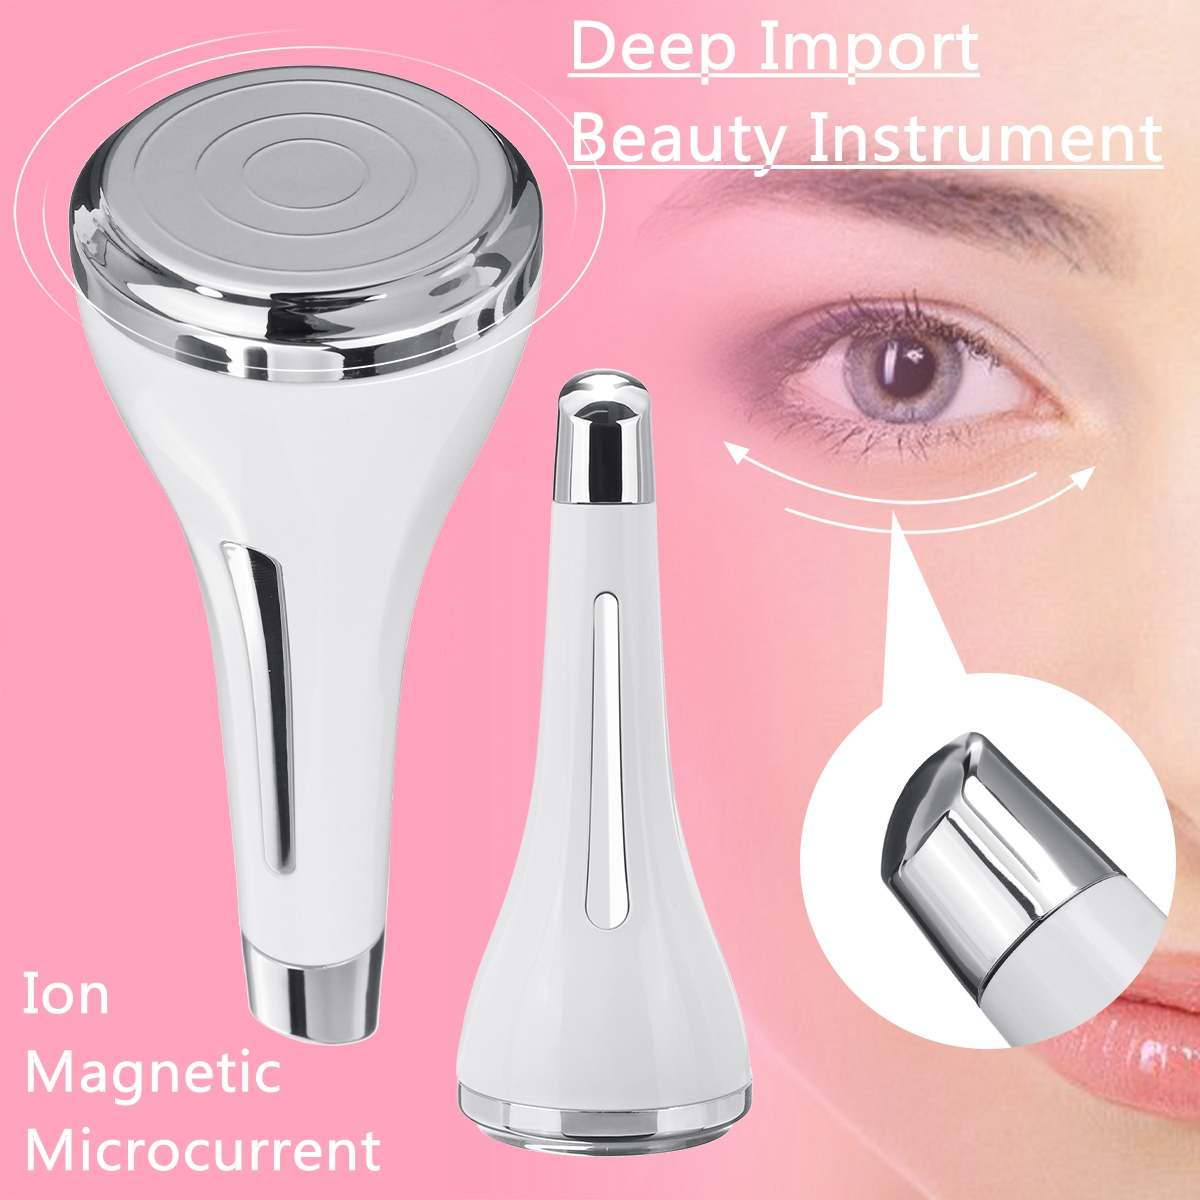 Eliminate Wrinkles Massager Beautiful Face Massage Instrument Whitening Electric Import Device Skin Care Toxin Export Apparatus